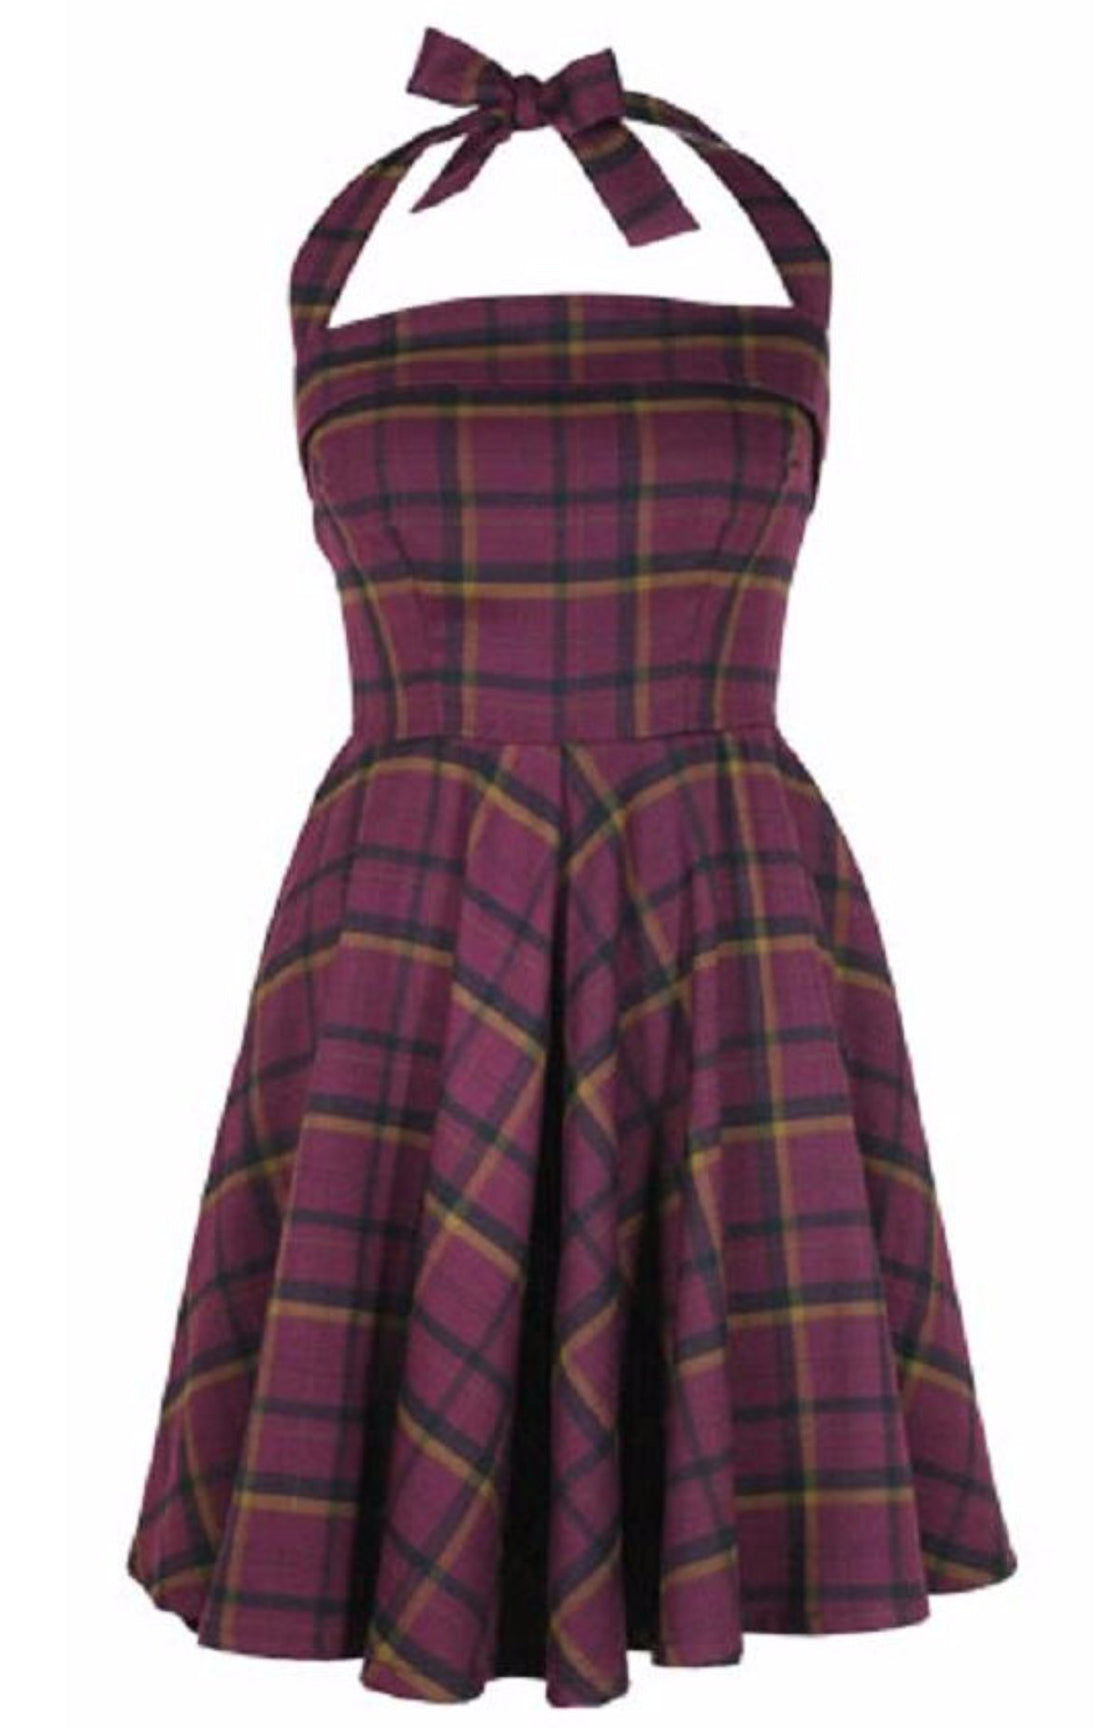 The PRETTY IN PLAID Halter Dress